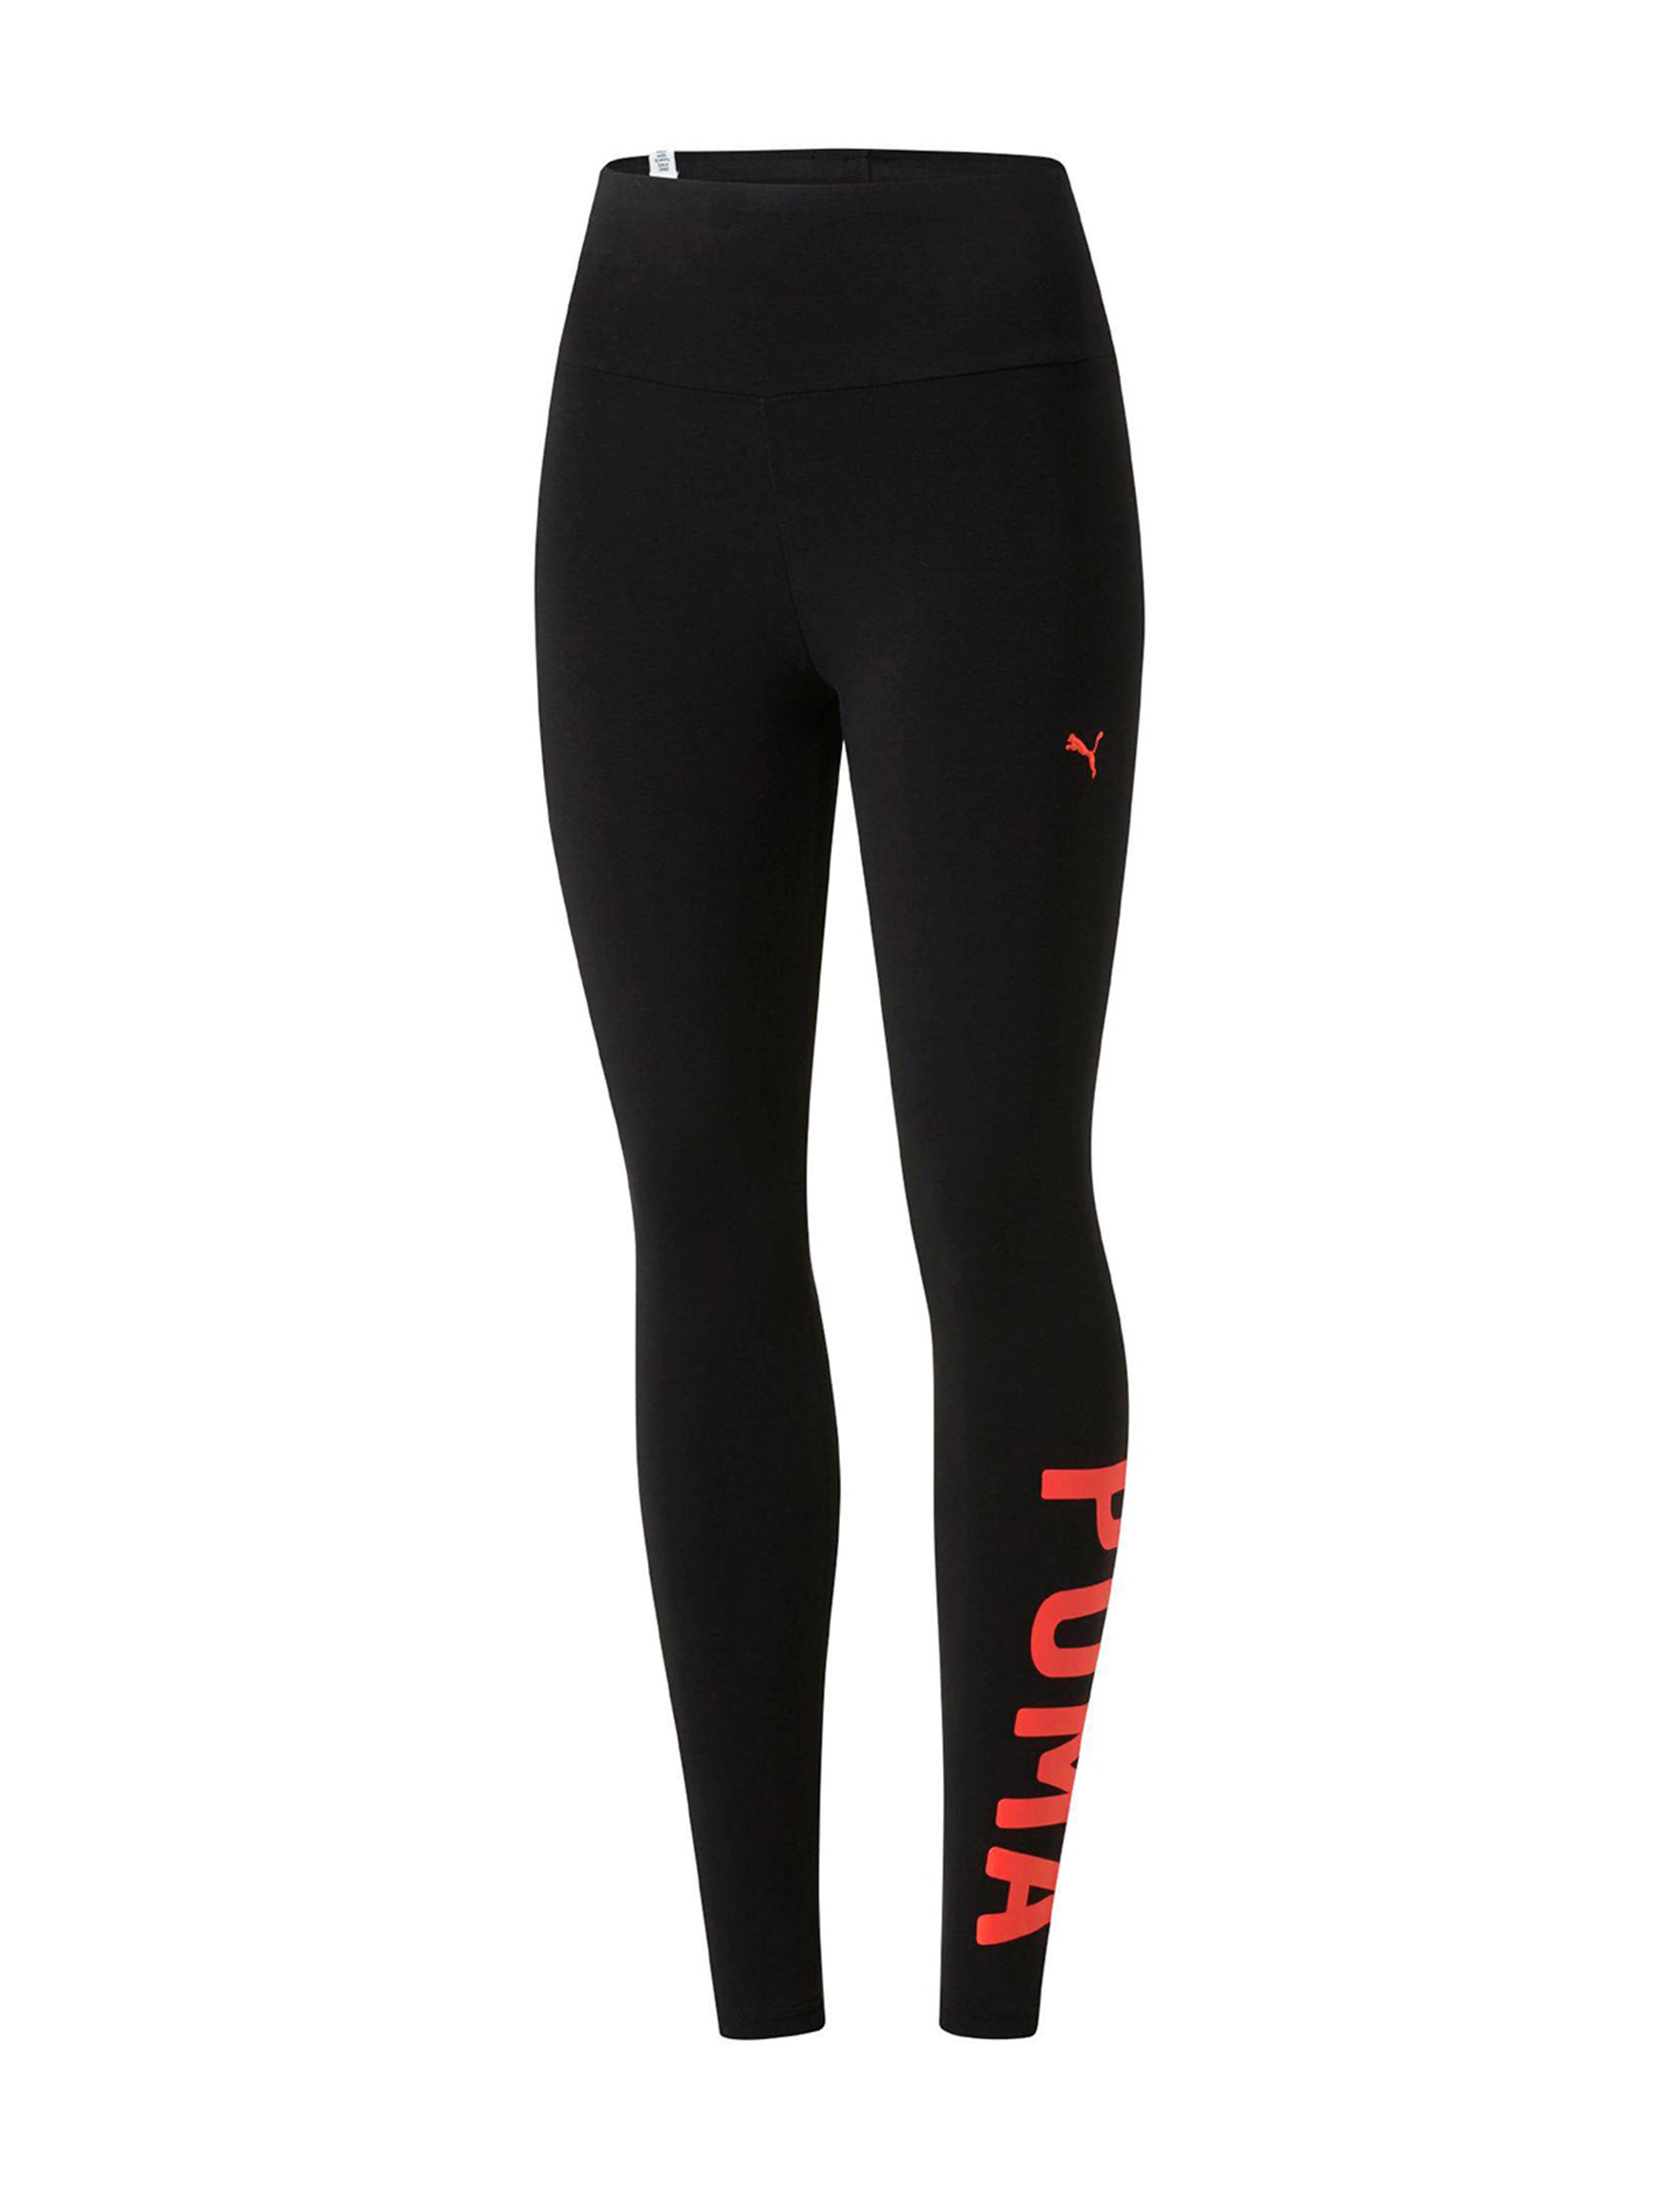 Puma Black Leggings